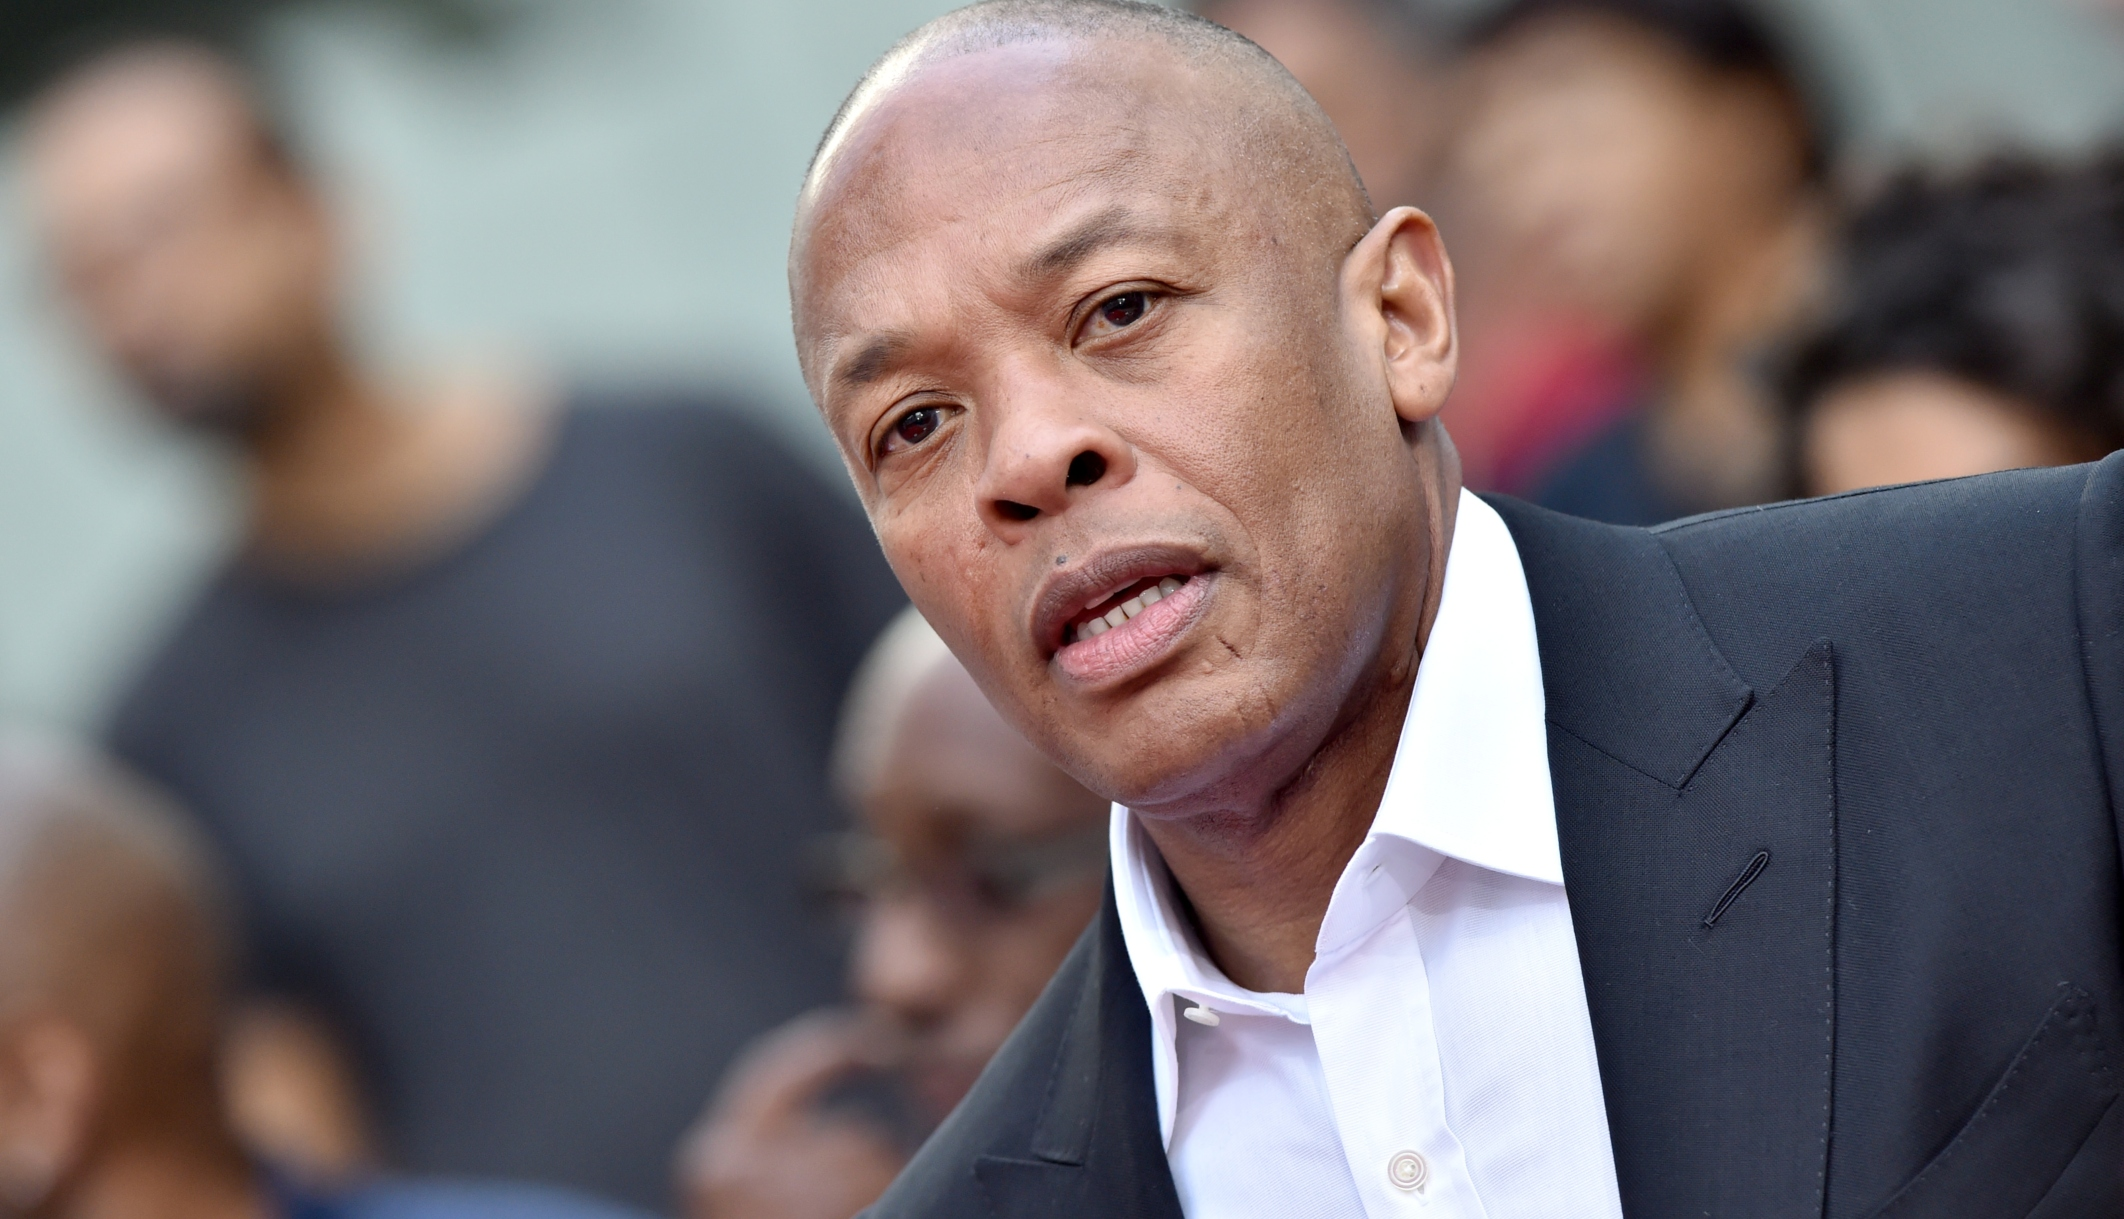 Dr. Dre pictured at the Hand and Footprint Ceremony in November 2018